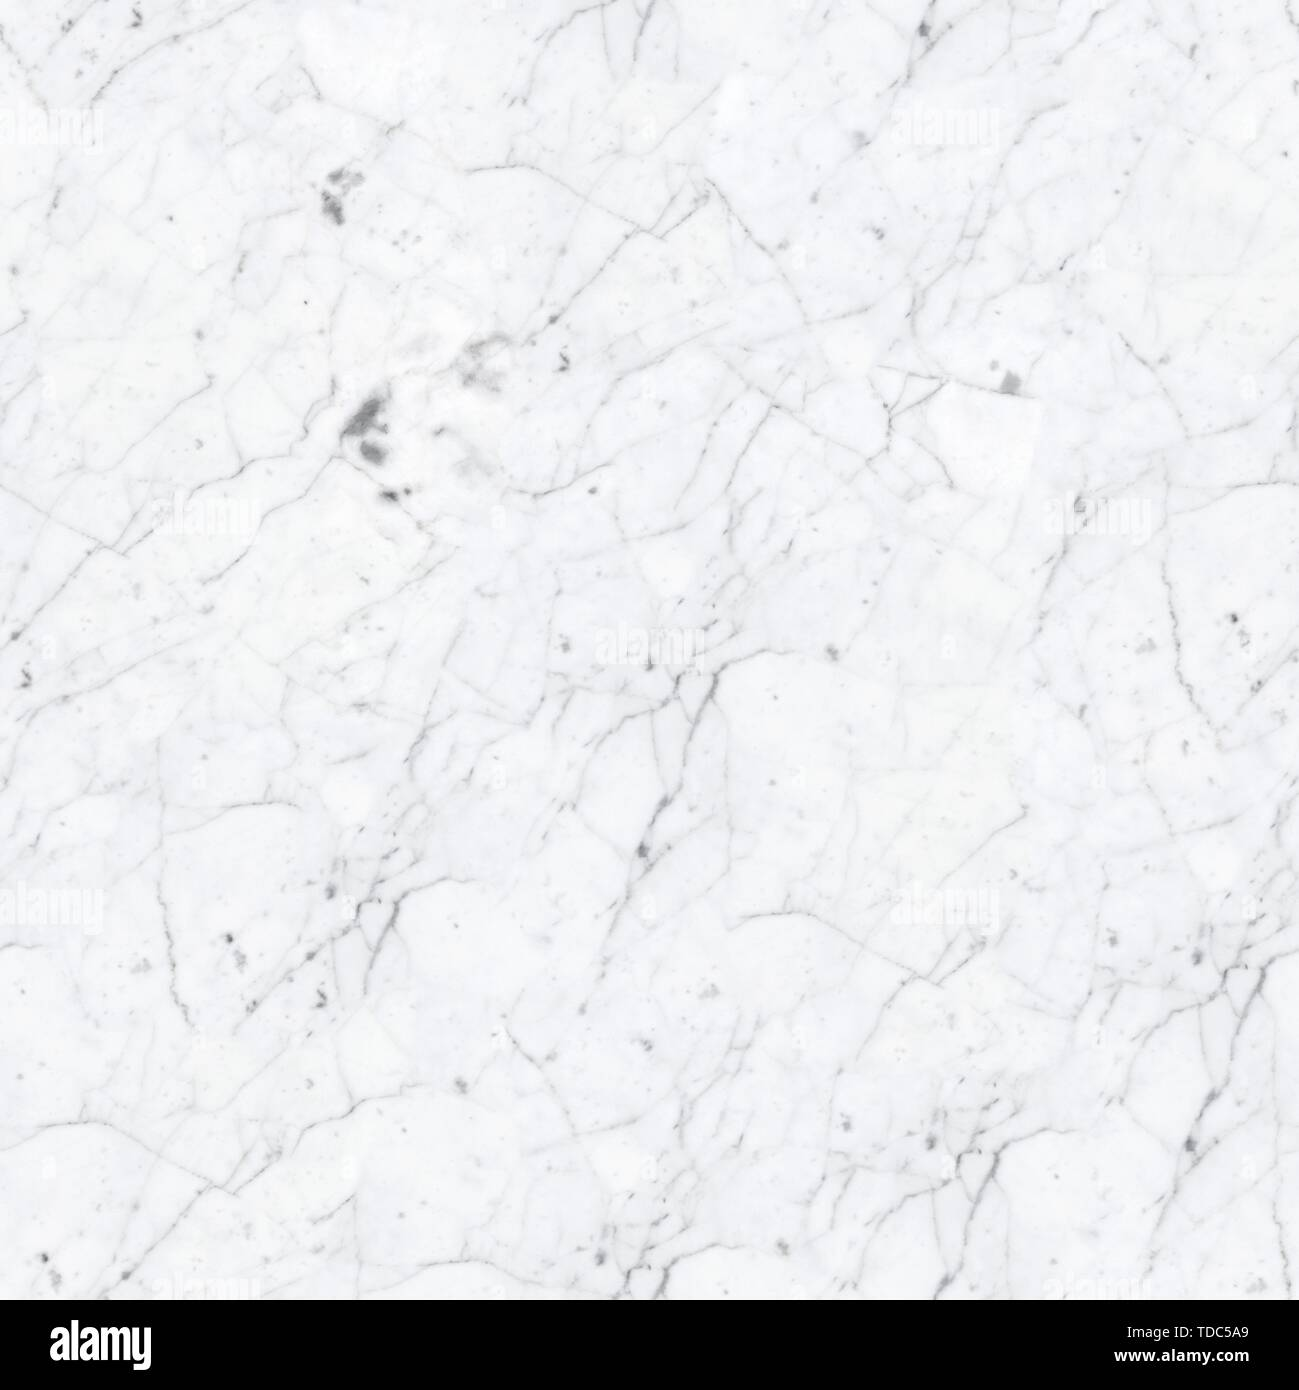 Close Up Of White Marble Texture Seamless Square Background Tile Ready High Resolution Photo Stock Photo Alamy